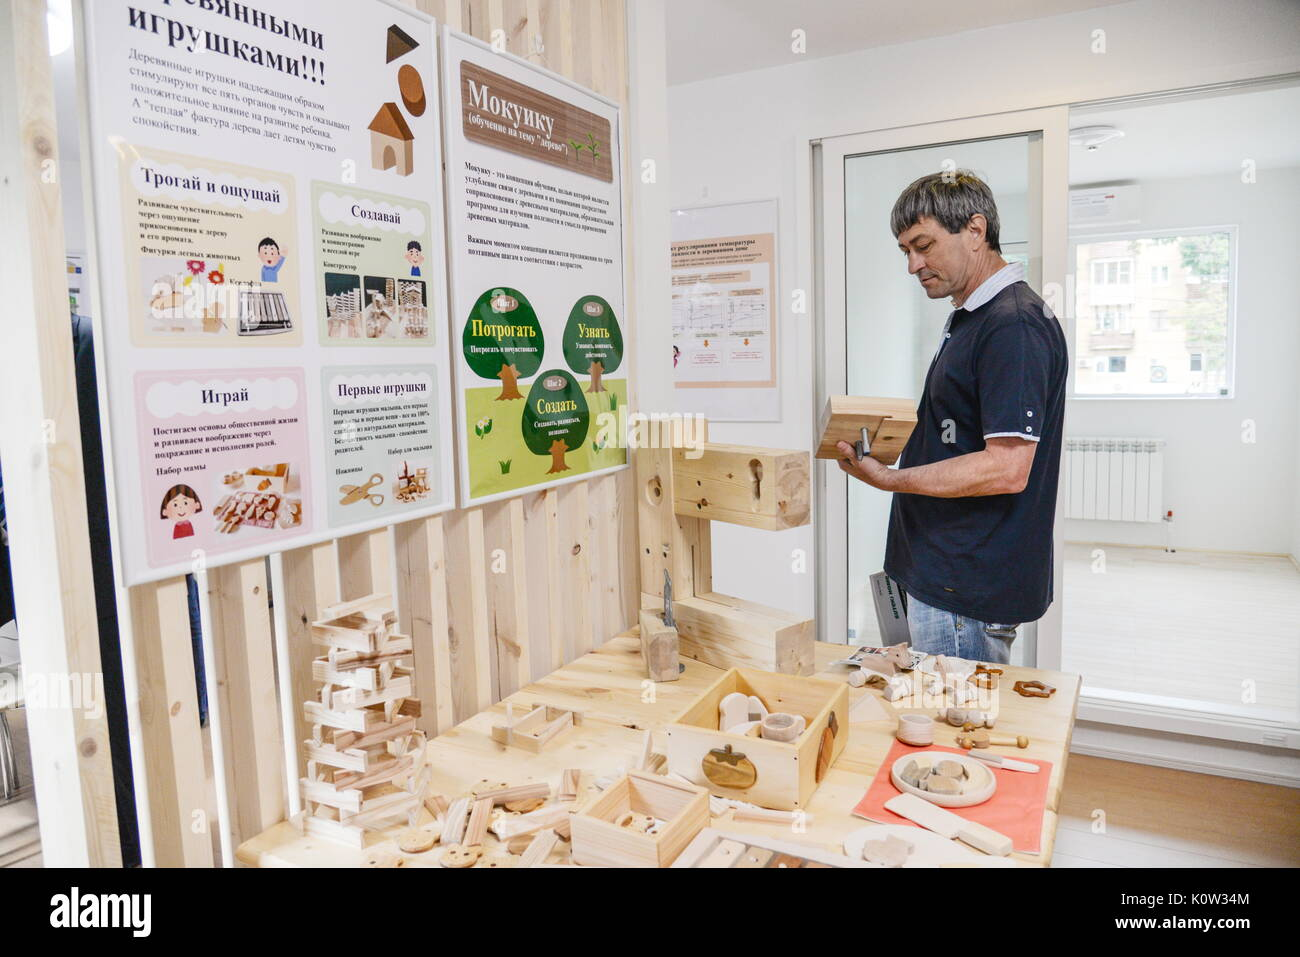 VORONEZH, RUSSIA - AUGUST 24, 2017: Wooden toys of the first Russian-Japanese two-storey smart home made of wood and eco-friendly materials. The house is equipped with energy management system, air quality monitors and temperature sensors. Kristina Brazhnikova/TASS - Stock Image